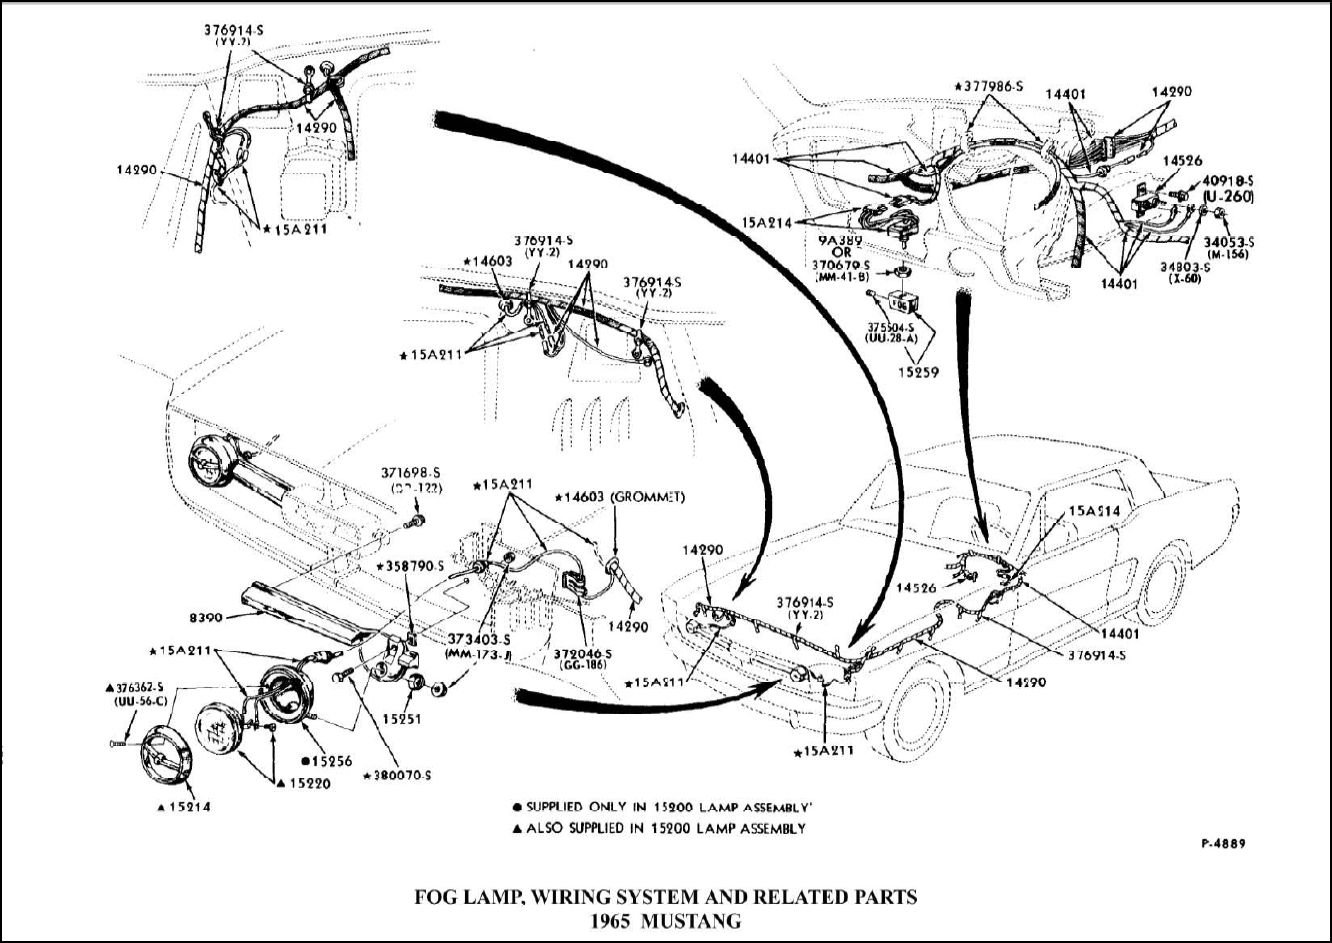 1968 Malibu Wiring Diagram 04 Cabriolet Fog Harness 31 Images 1965 Mustang Gt Light Ford Forum 118198d1293507181